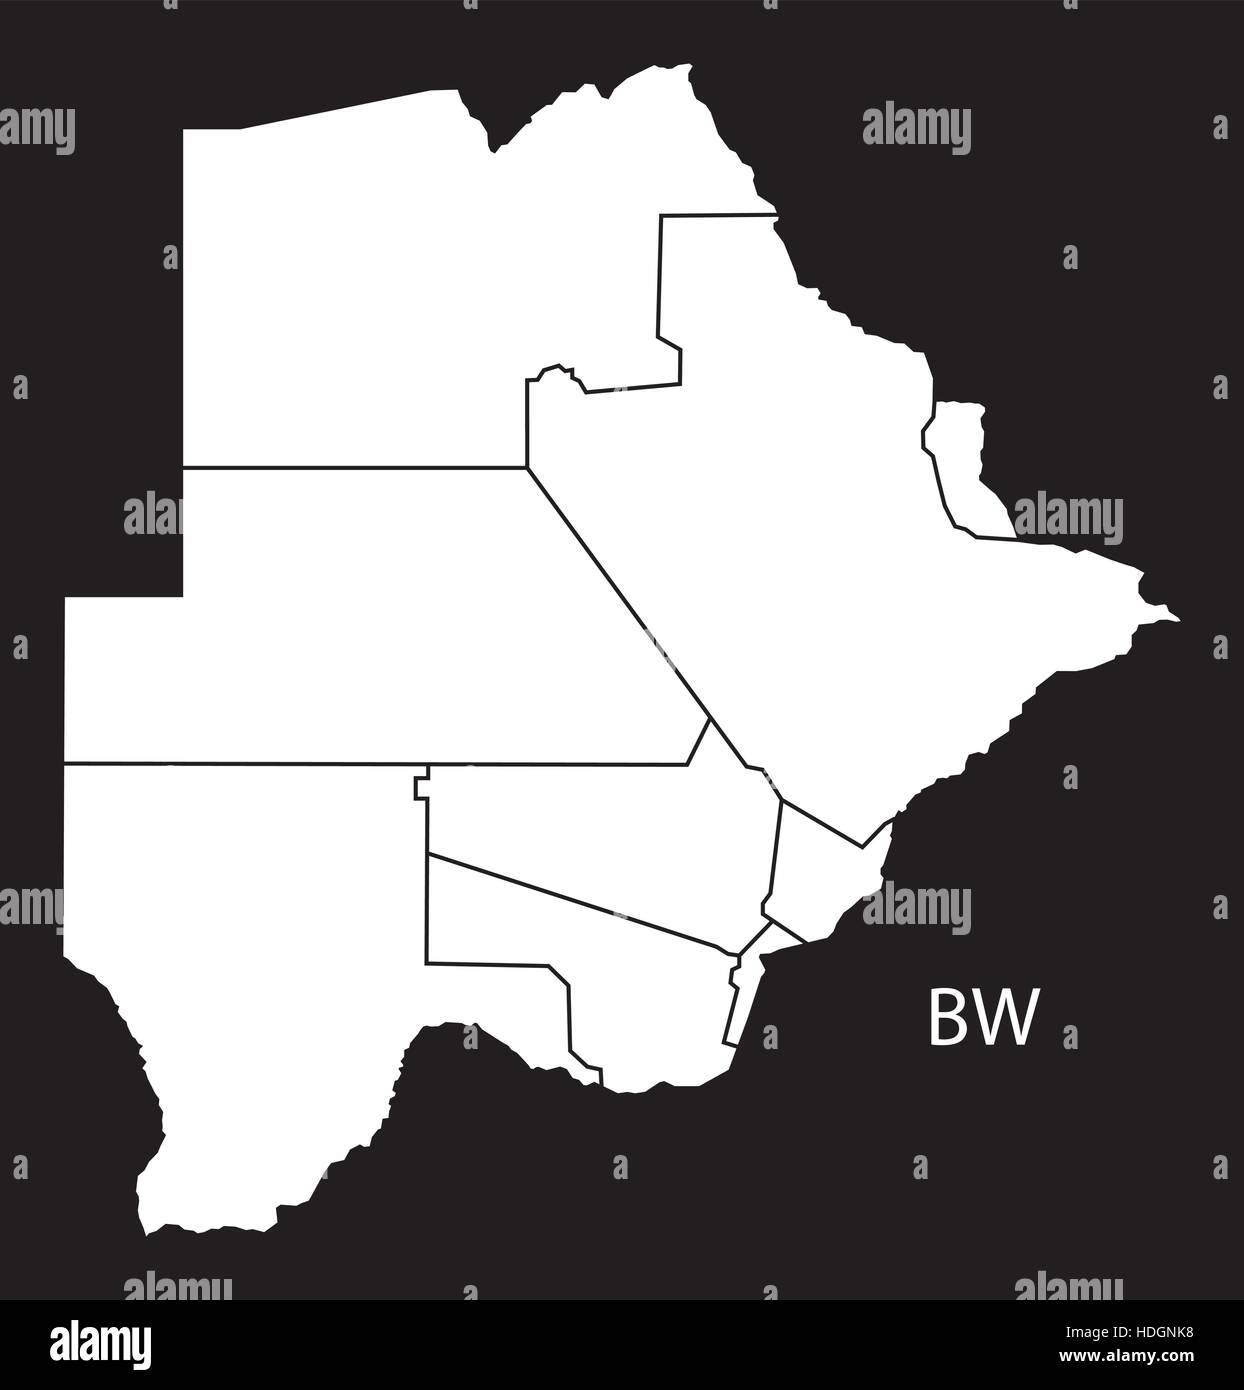 Botswana Districts Map Black And White Illustration Stock Vector - Botswana map hd